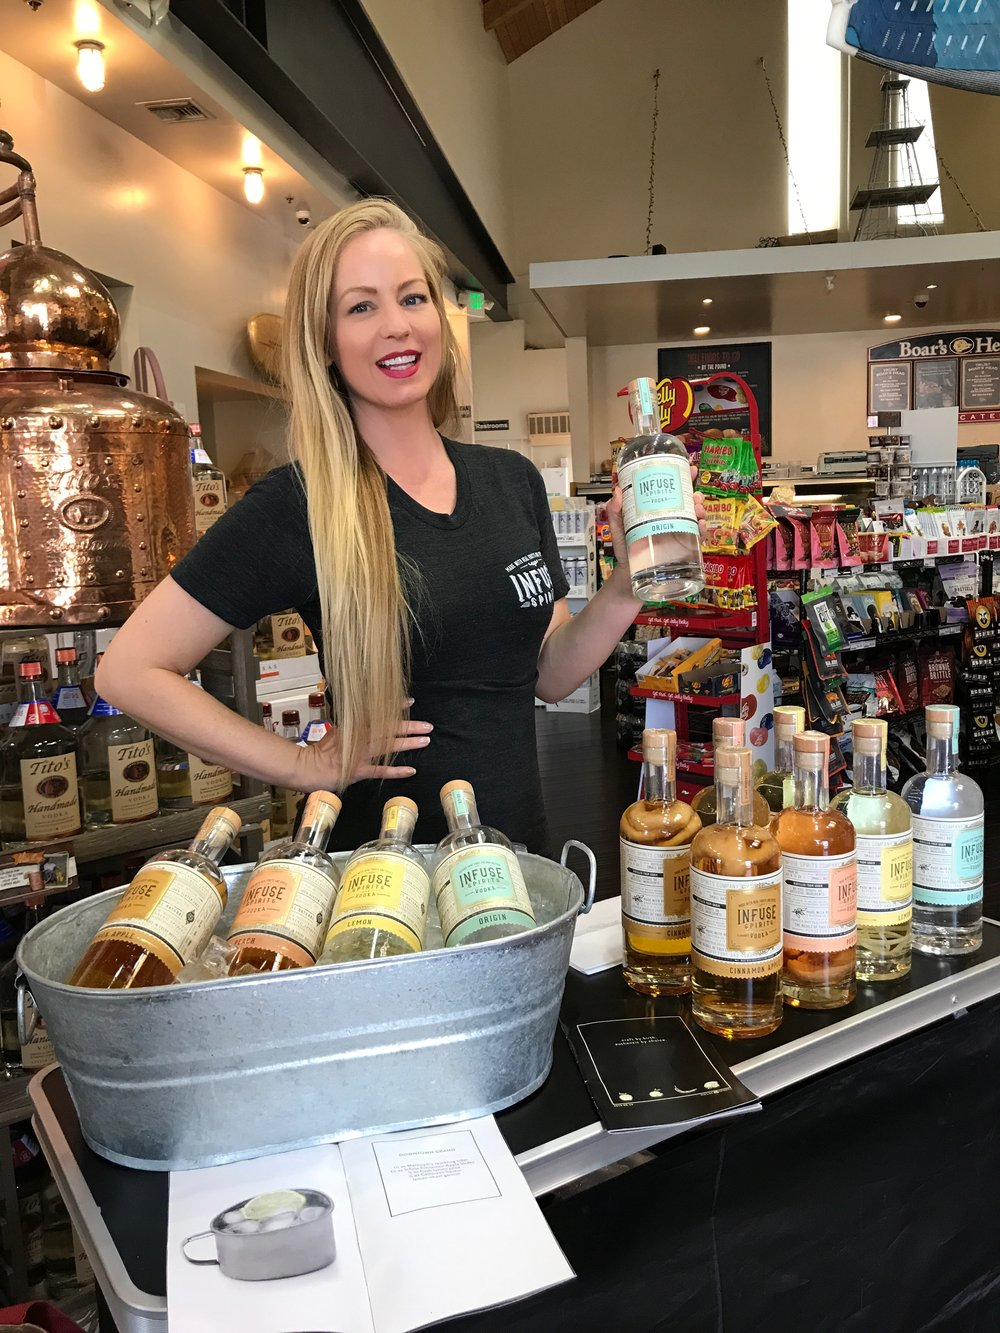 INFUSE SPIRITS SAMPLING PROGRAM  - Brand Activation, Consumer Engagement, Retail Samplings, Data Collection, Training, Recruiting, Account Management, Sales, Logistics Management.